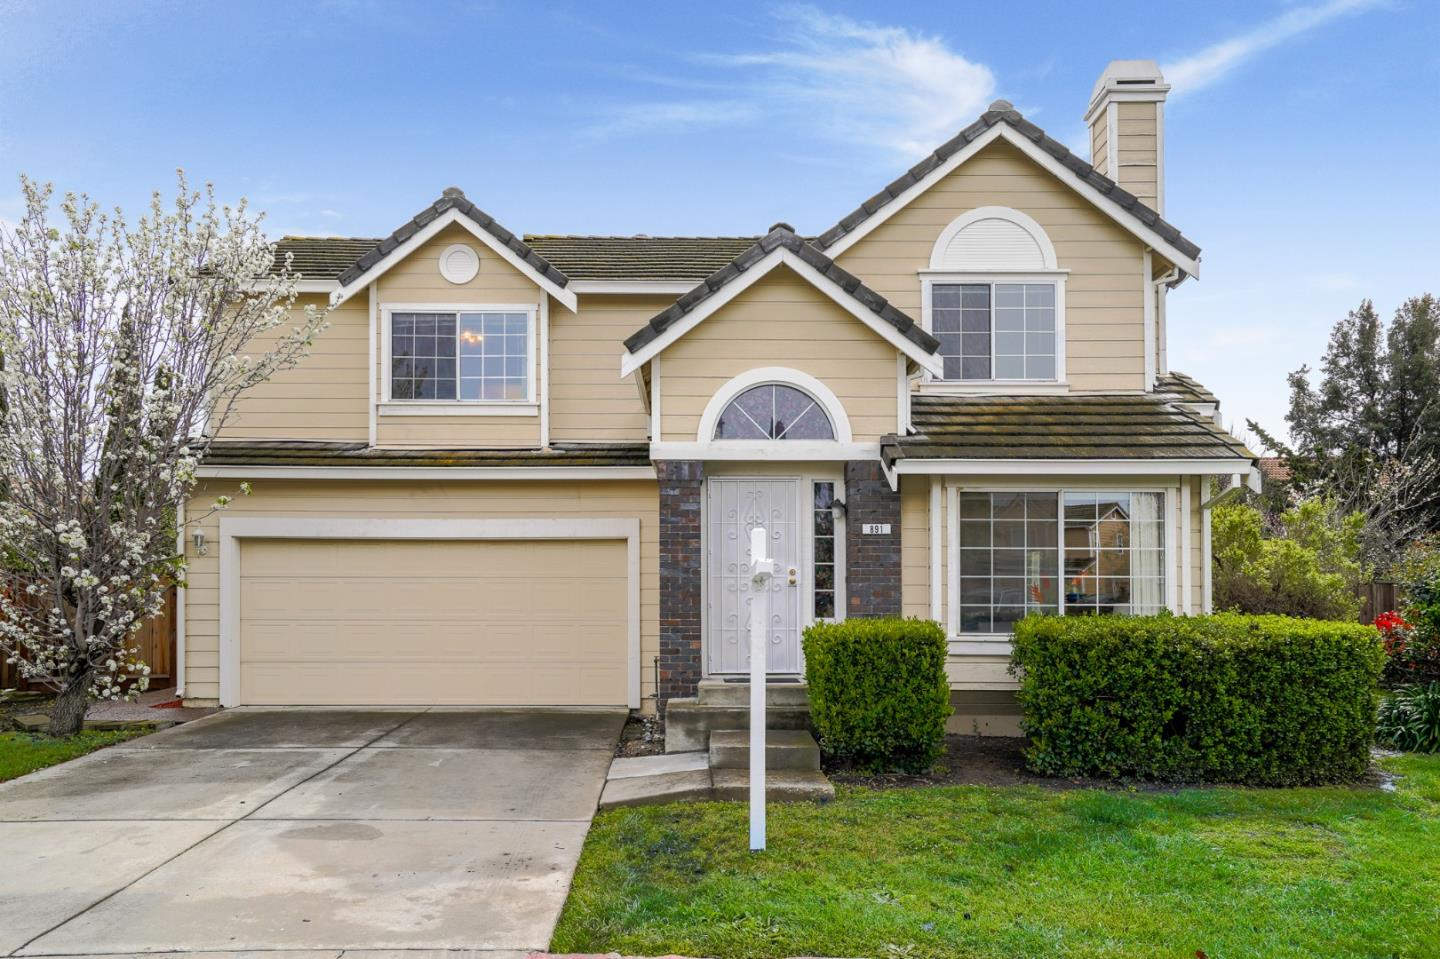 Detail Gallery Image 1 of 1 For 891 Coventry Cir, Milpitas, CA, 95035 - 4 Beds | 2/1 Baths